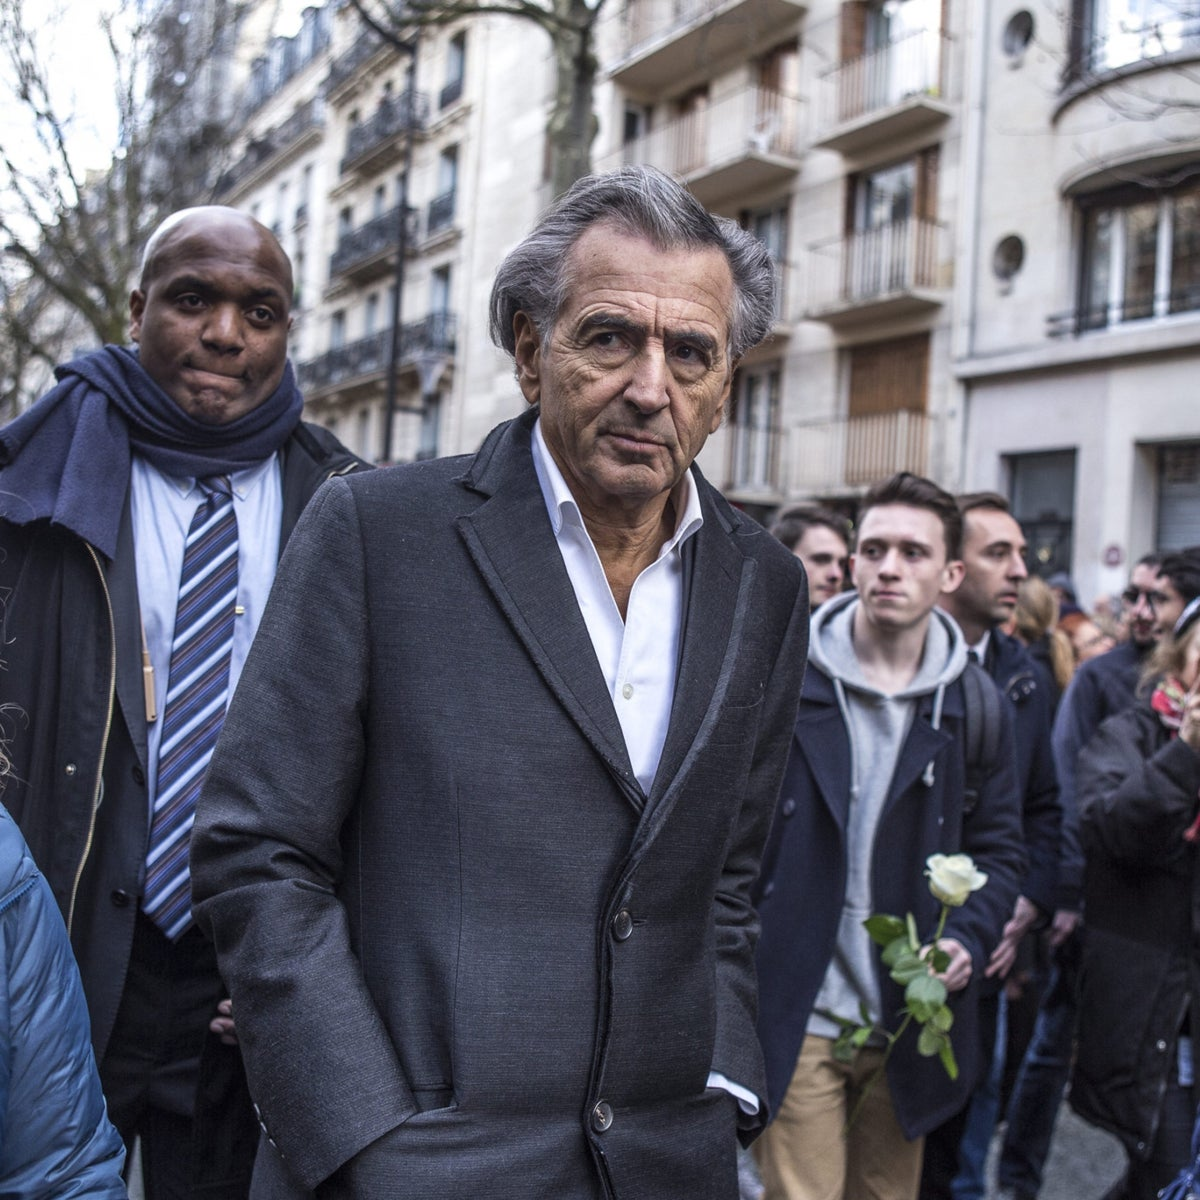 Bernard-Henri Lévy during the solidarity parade in Paris in honor of Mireille Knoll, following the brutal murder of the Holocaust survivor in March by a Muslim youth.